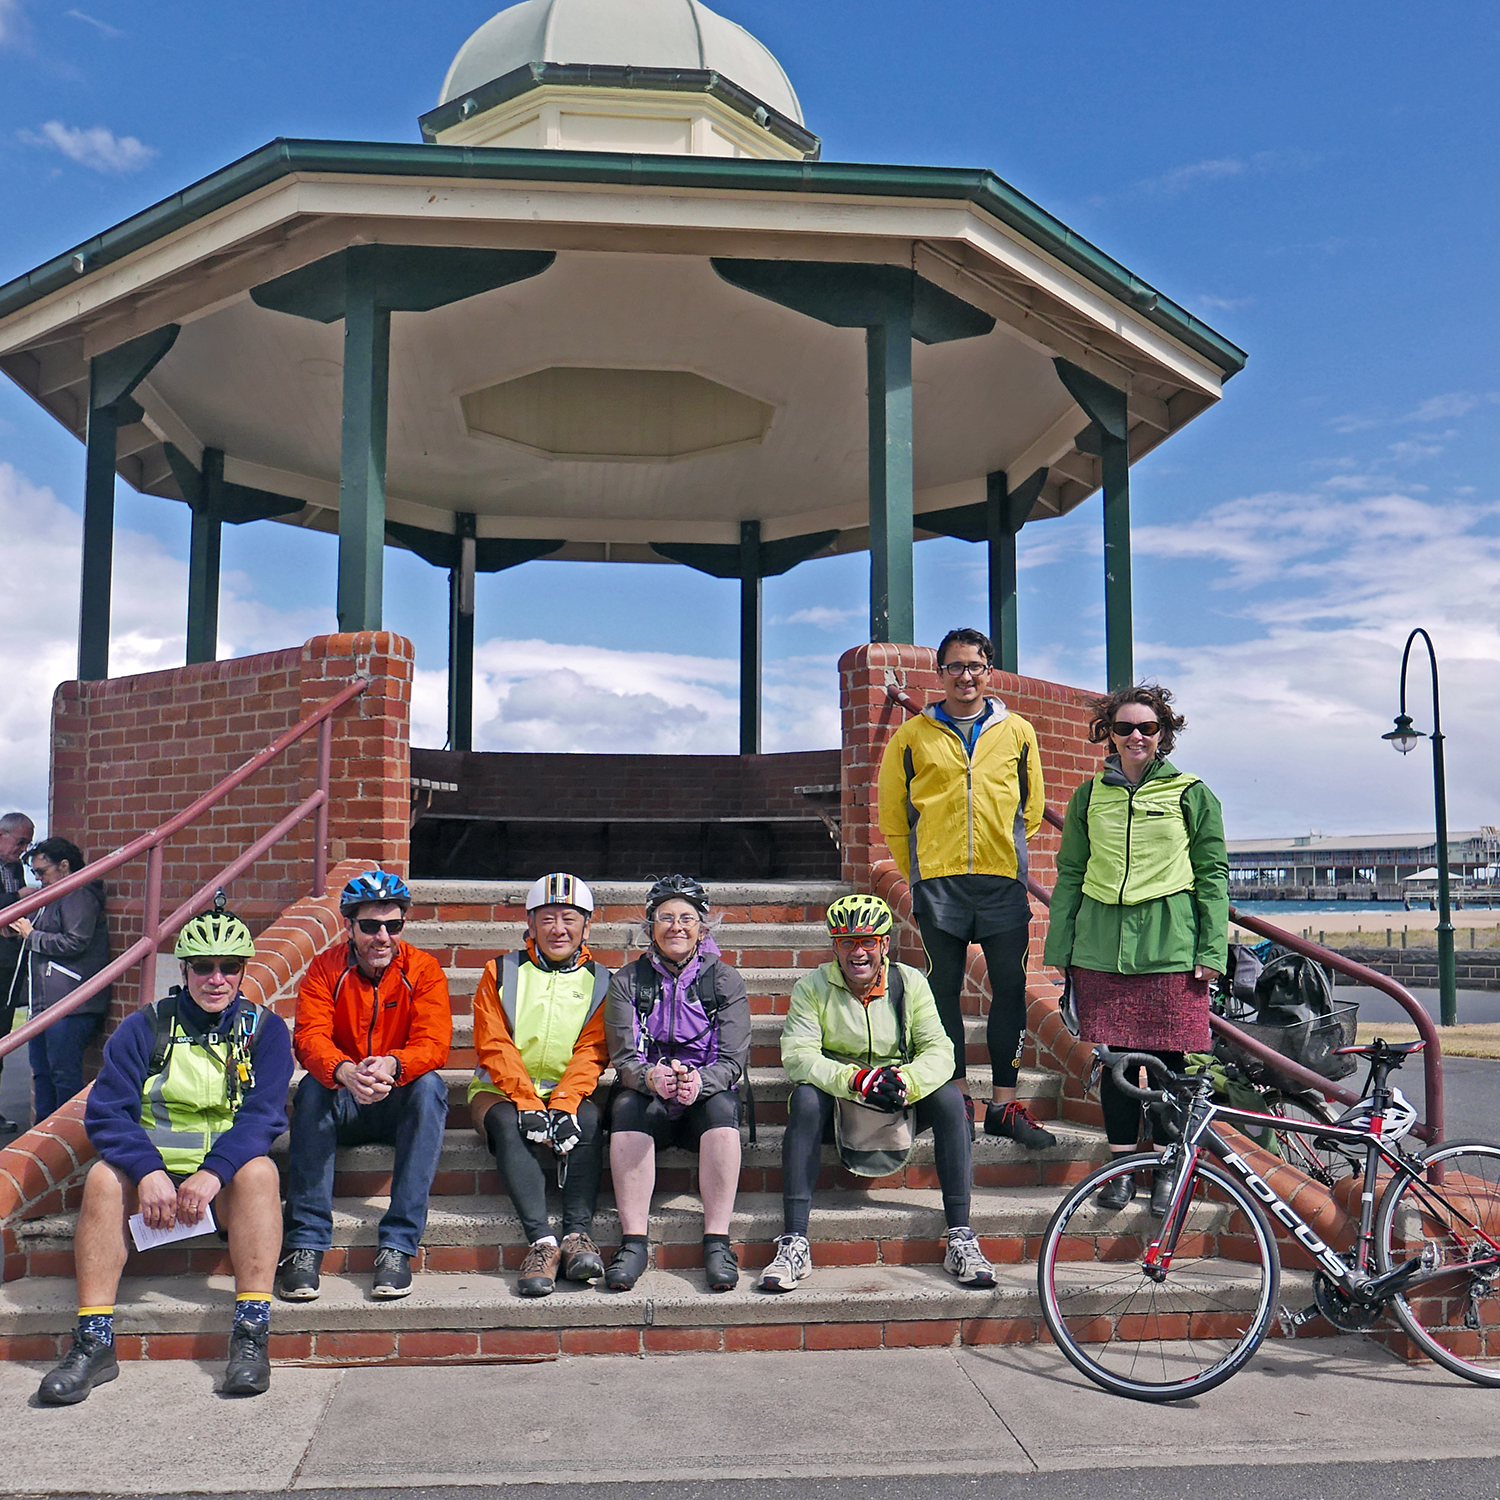 Despite the chilly temperature, strong winds and looming grey clouds, we were lucky to get sunshine to ride in. Here we are starting at the Port Melbourne Rotunda.